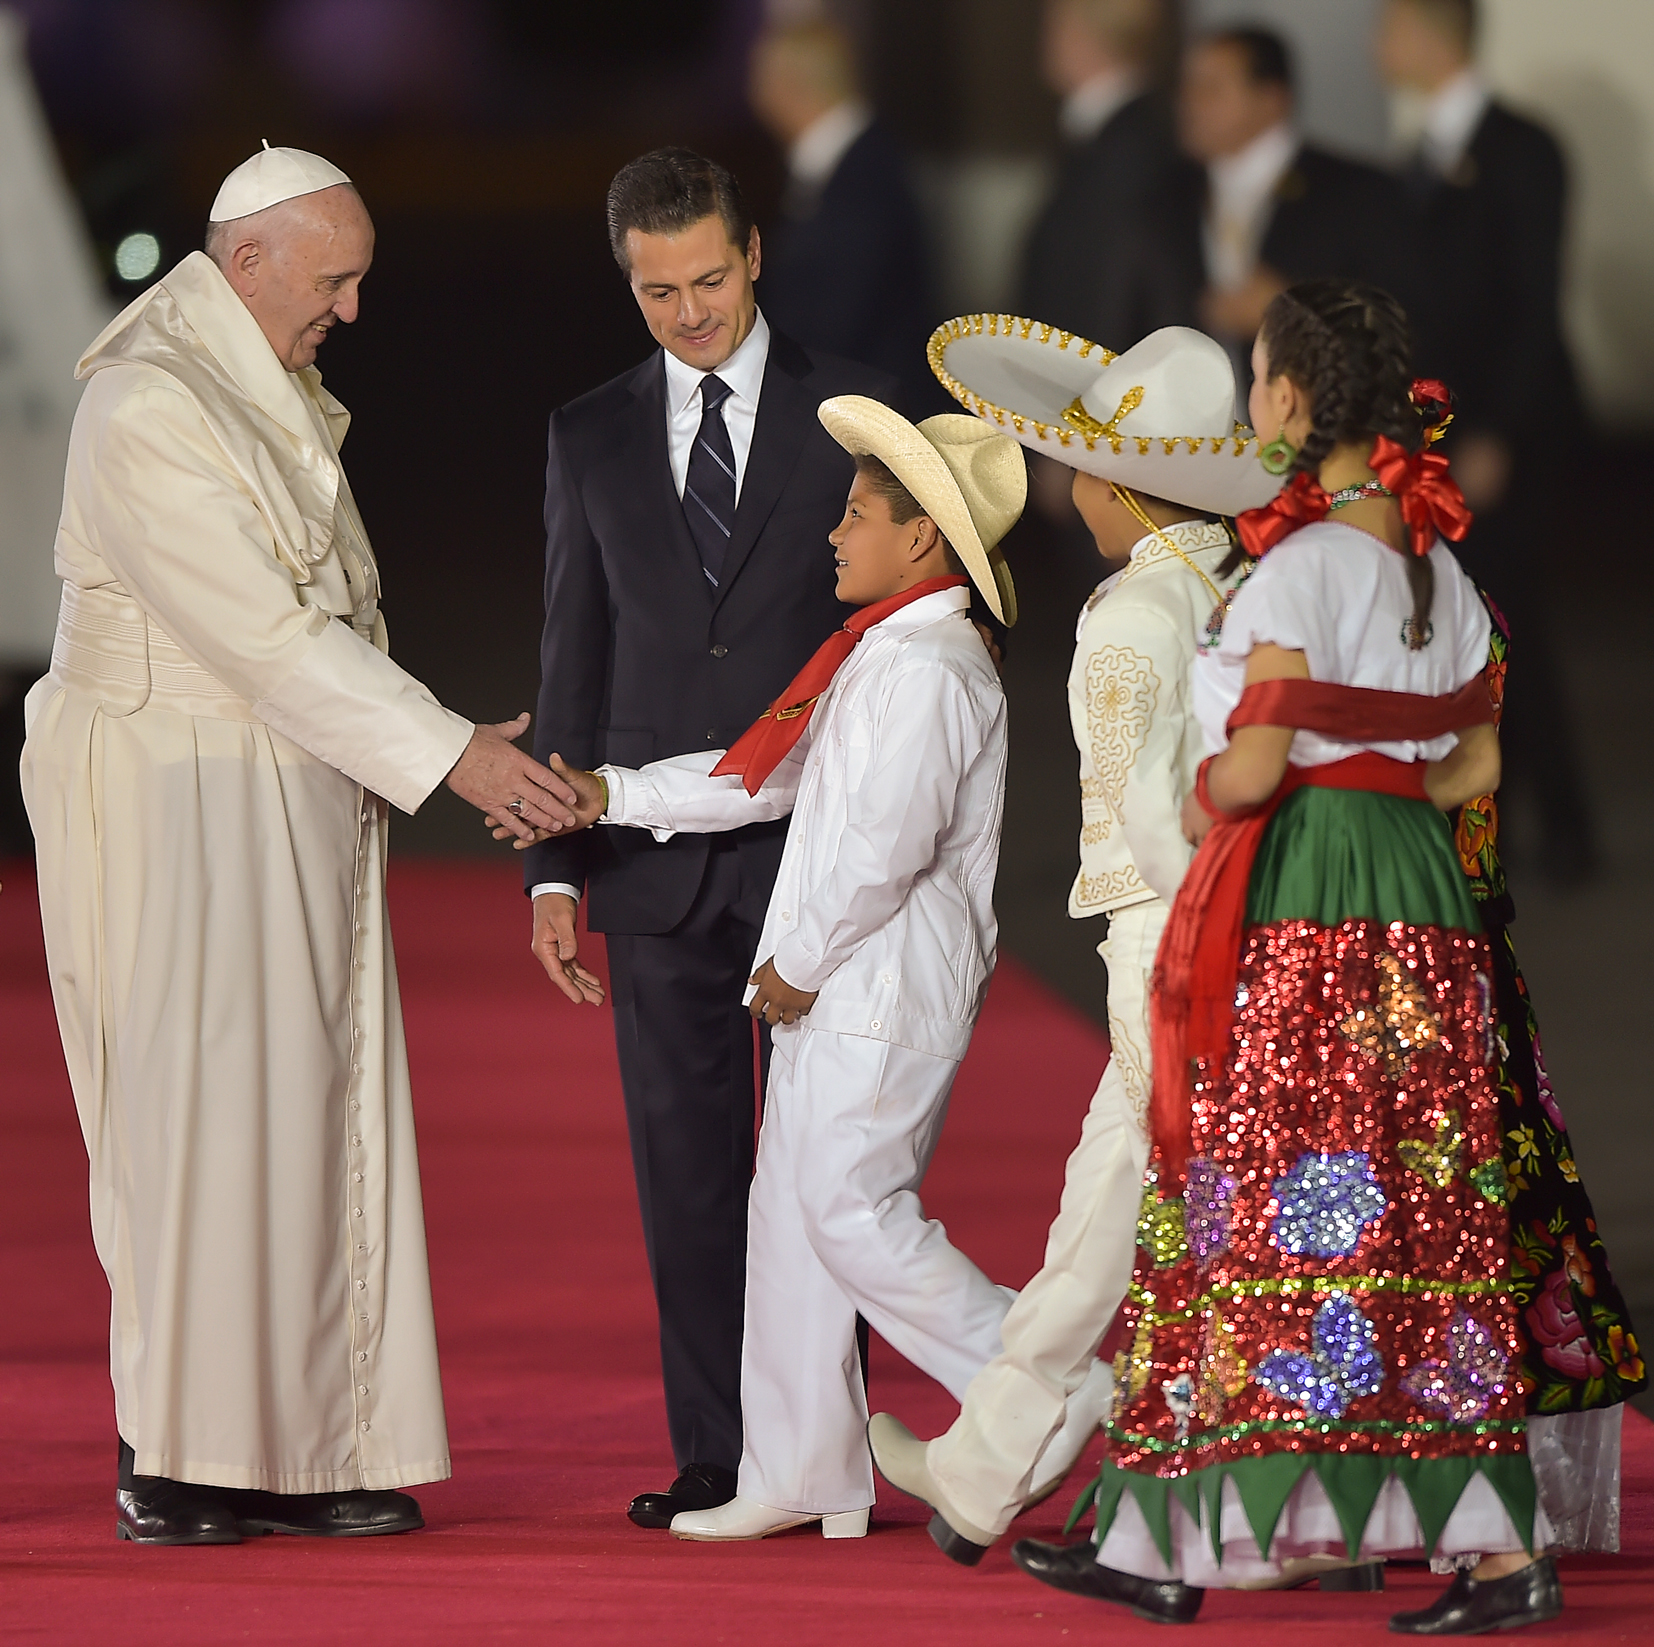 The Mexican State and the Holy See have a close, respectful relationship and share values such as social justice, peace and security.